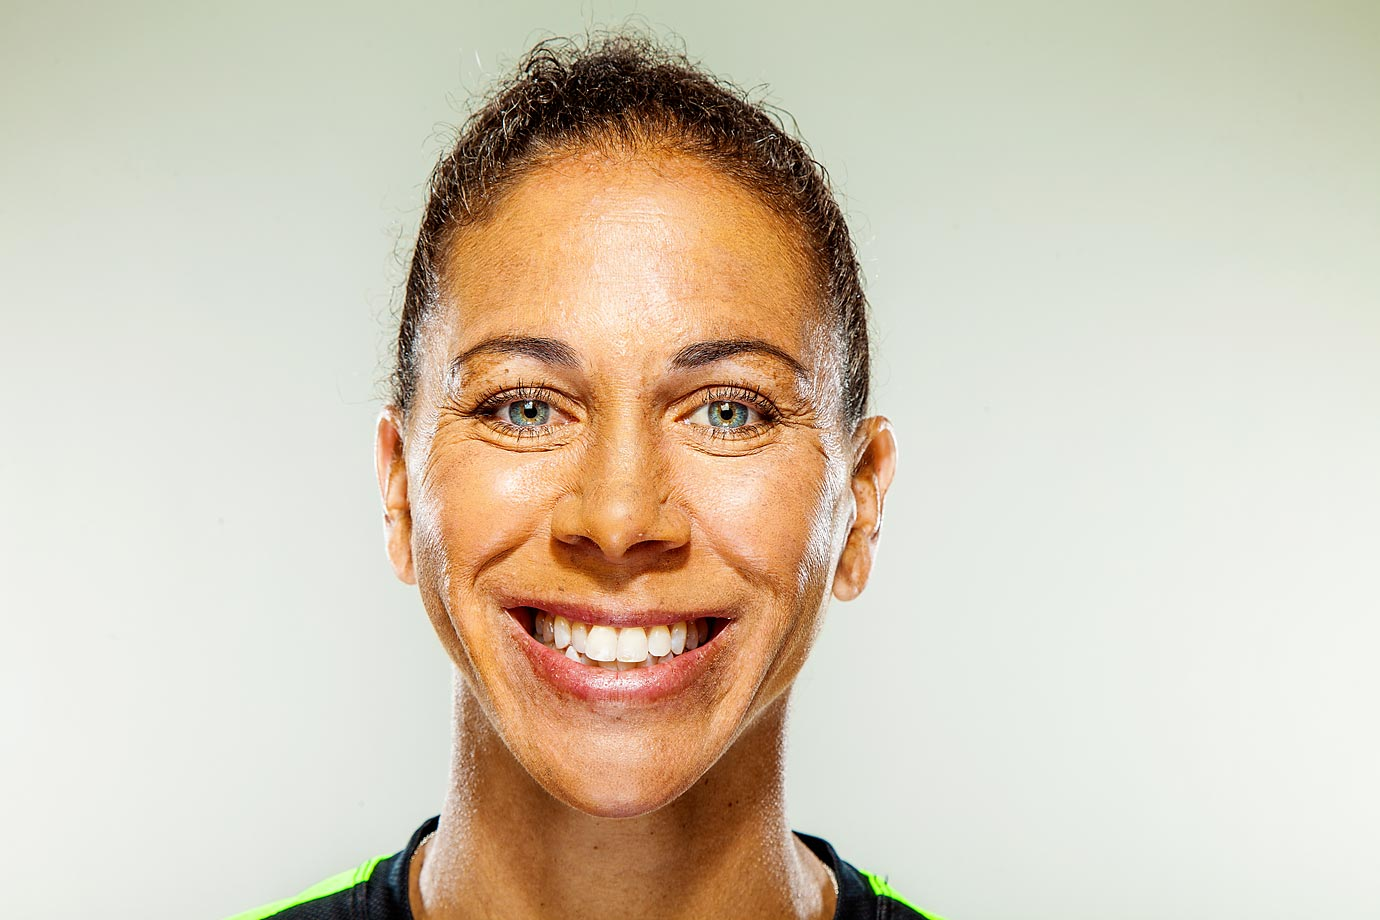 Us Womens World Cup Team Midfielder Shannon Boxx  Sicom-9183